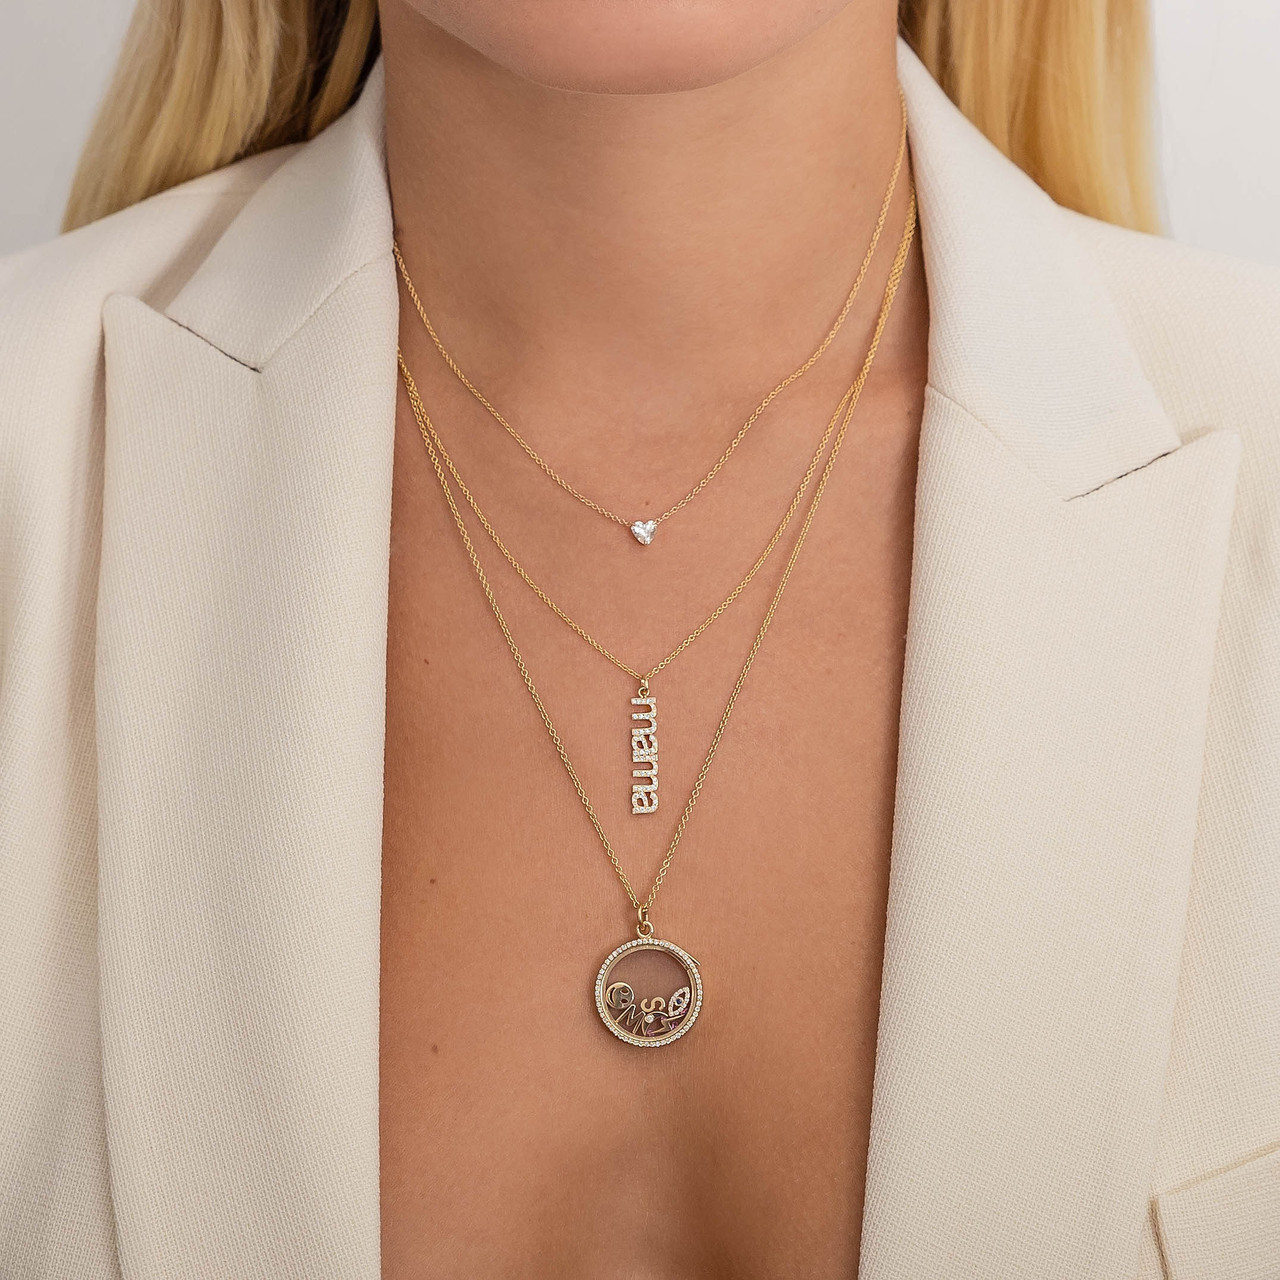 14k Gold Charm Locket Necklace